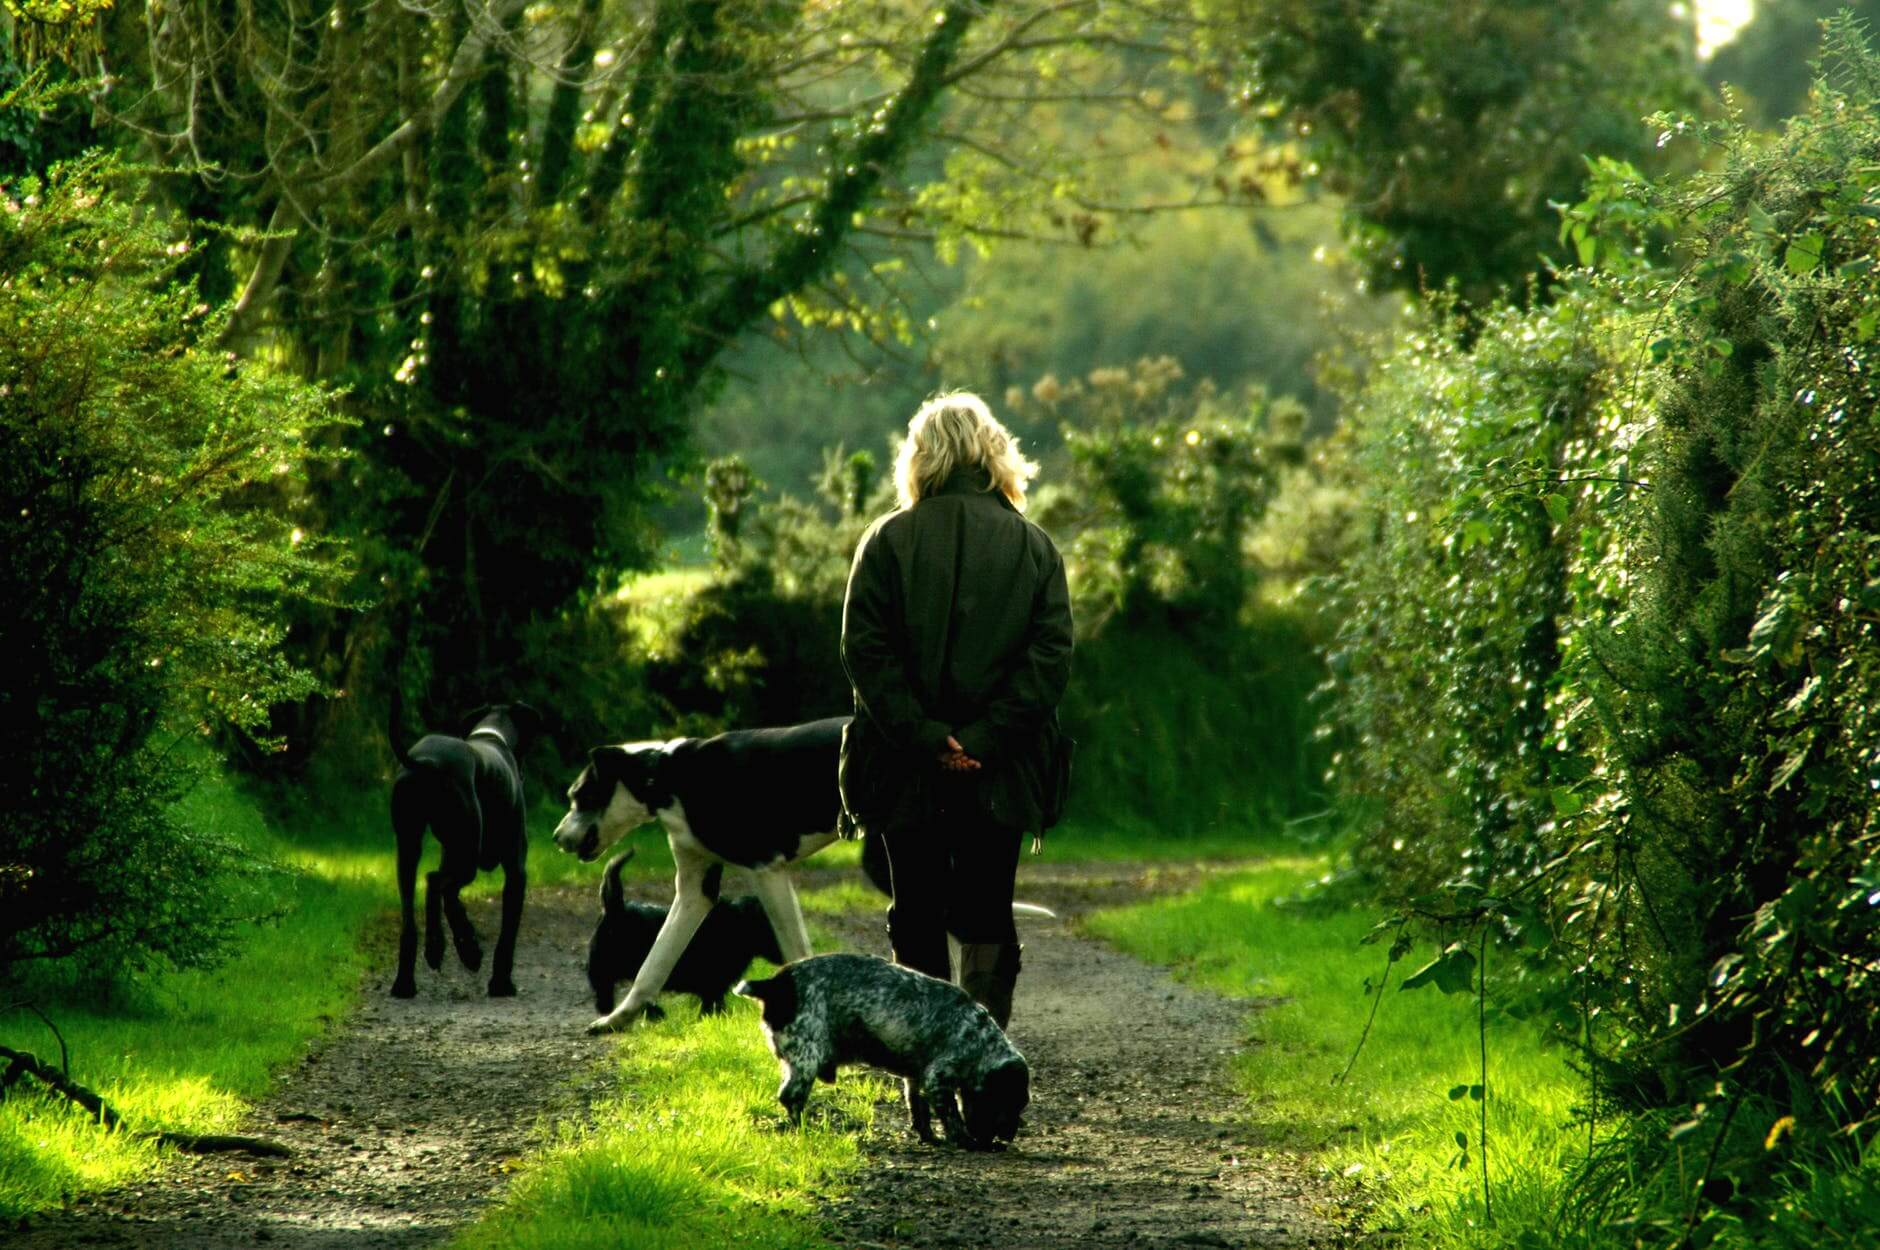 An older woman out on a walk with her dogs. The benefits of pets for seniors are great.